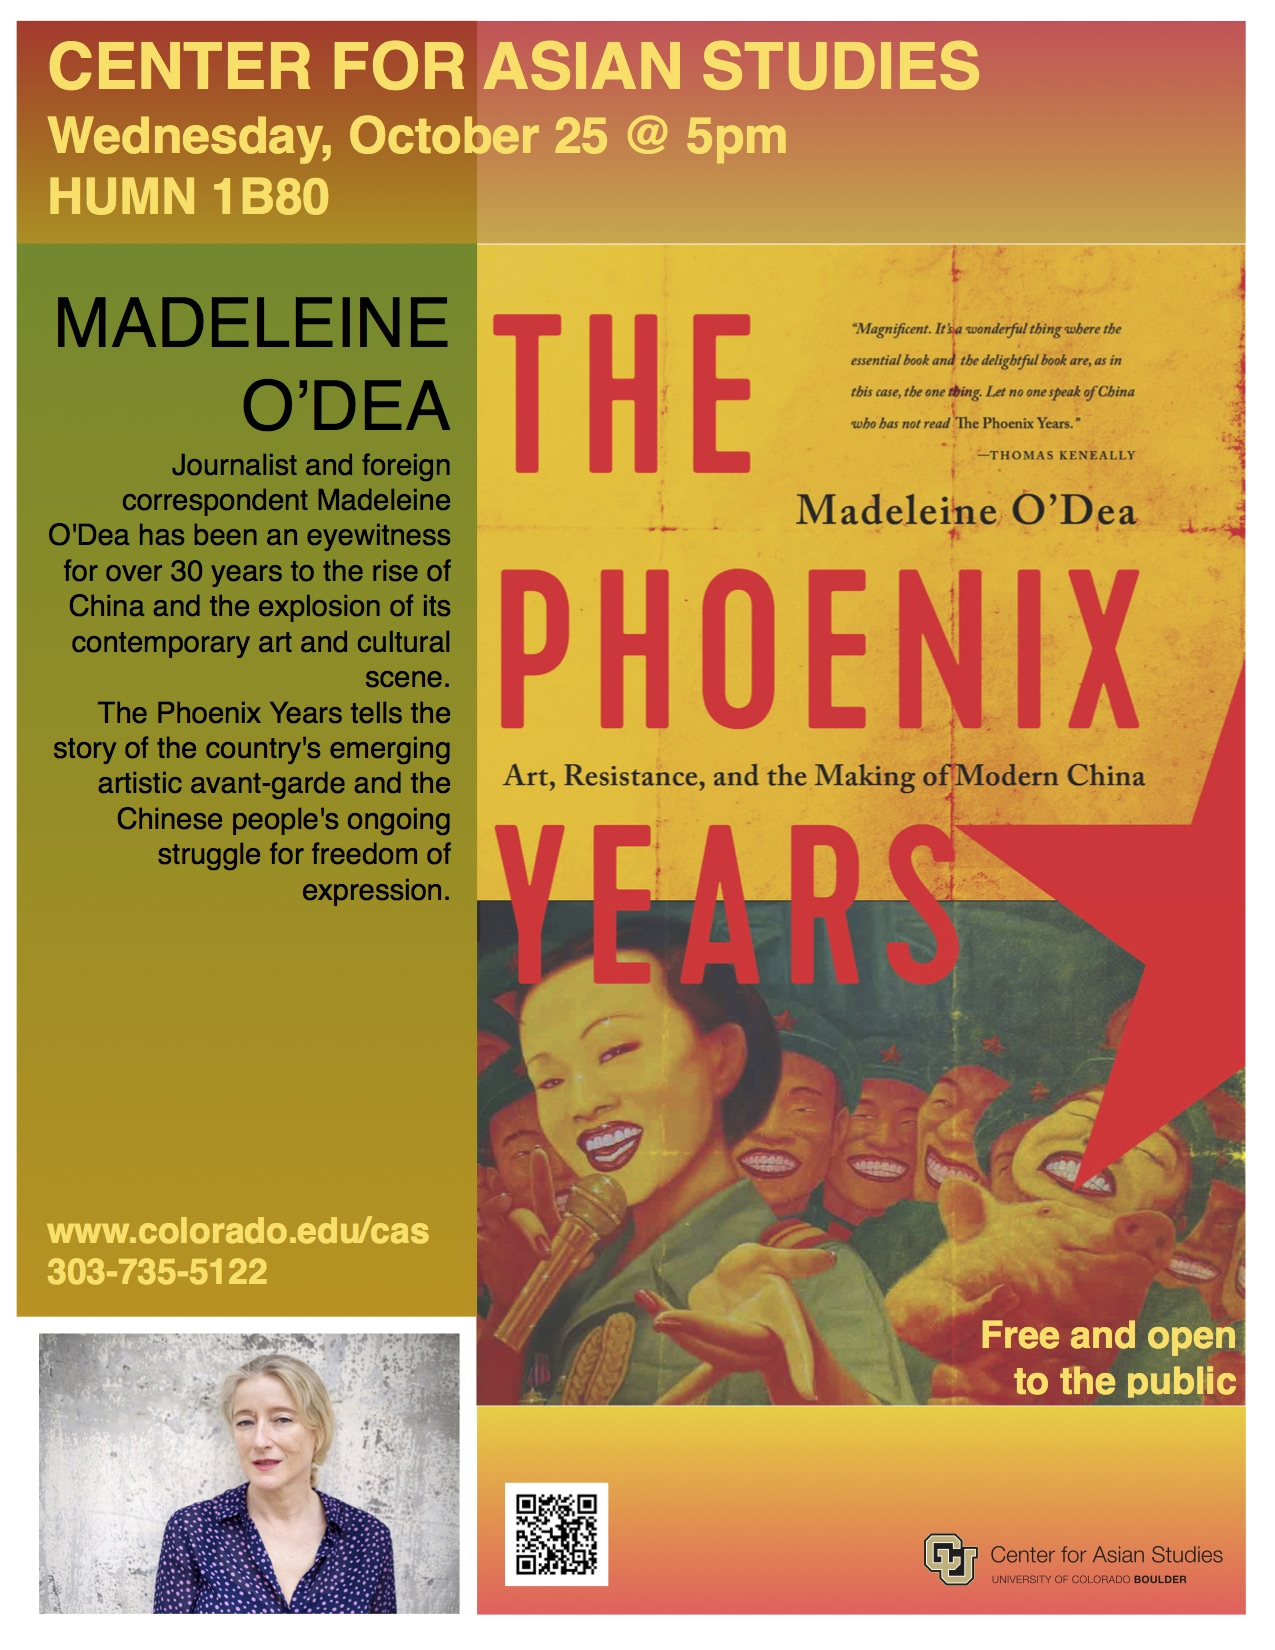 The Phoenix Years poster